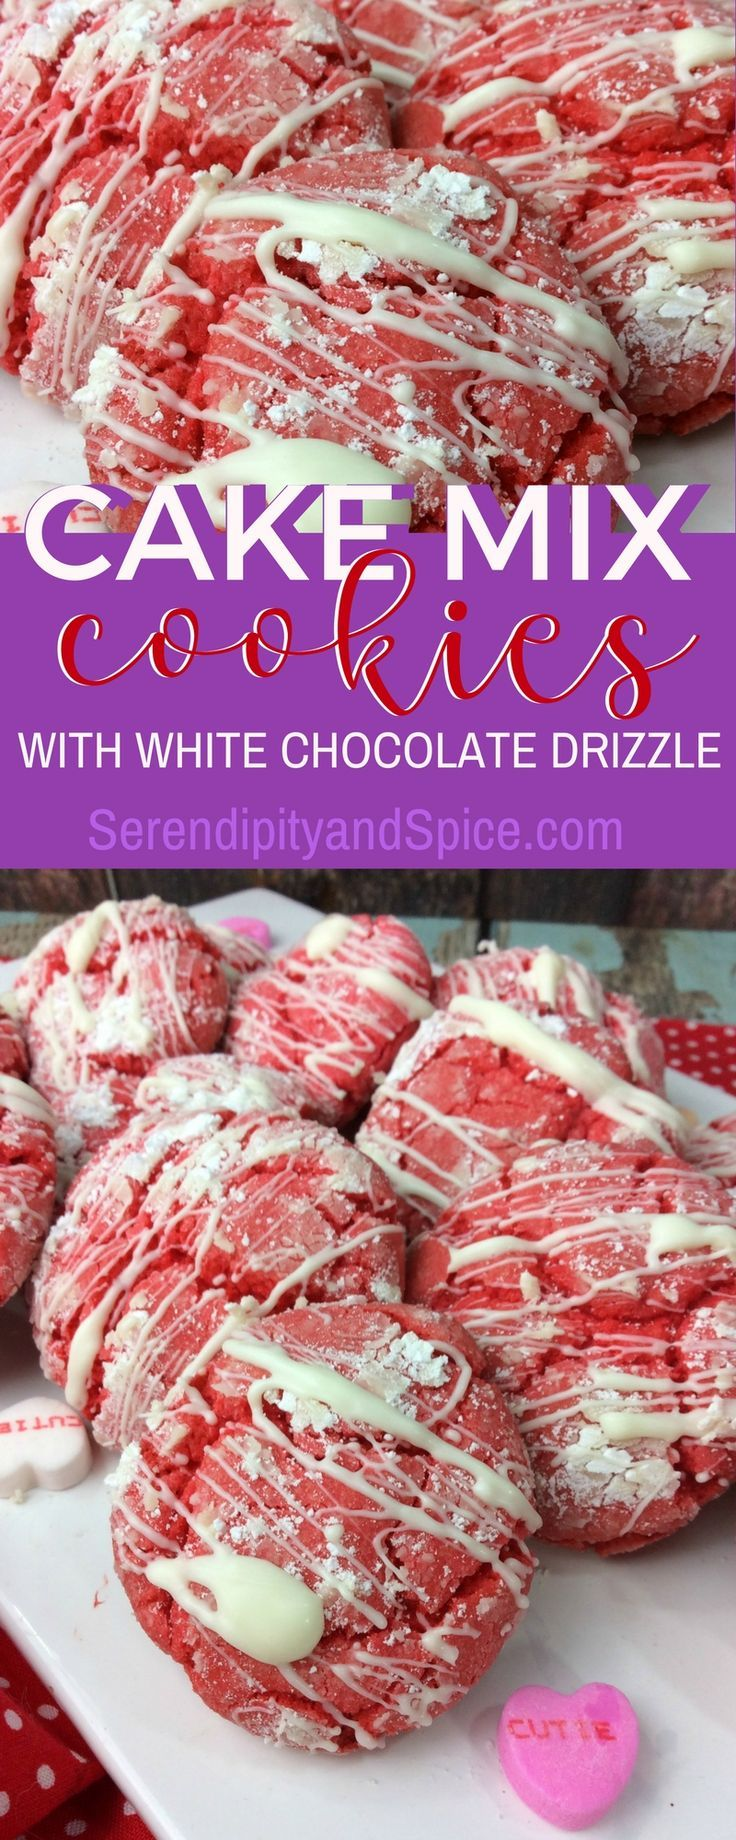 These strawberry and white chocolate cake mix cookies are perfect for baking with the kids!  #cookies #cakemixrecipes #cookingwithkids #valentinesday #valentine #dessert #dessertrecipes